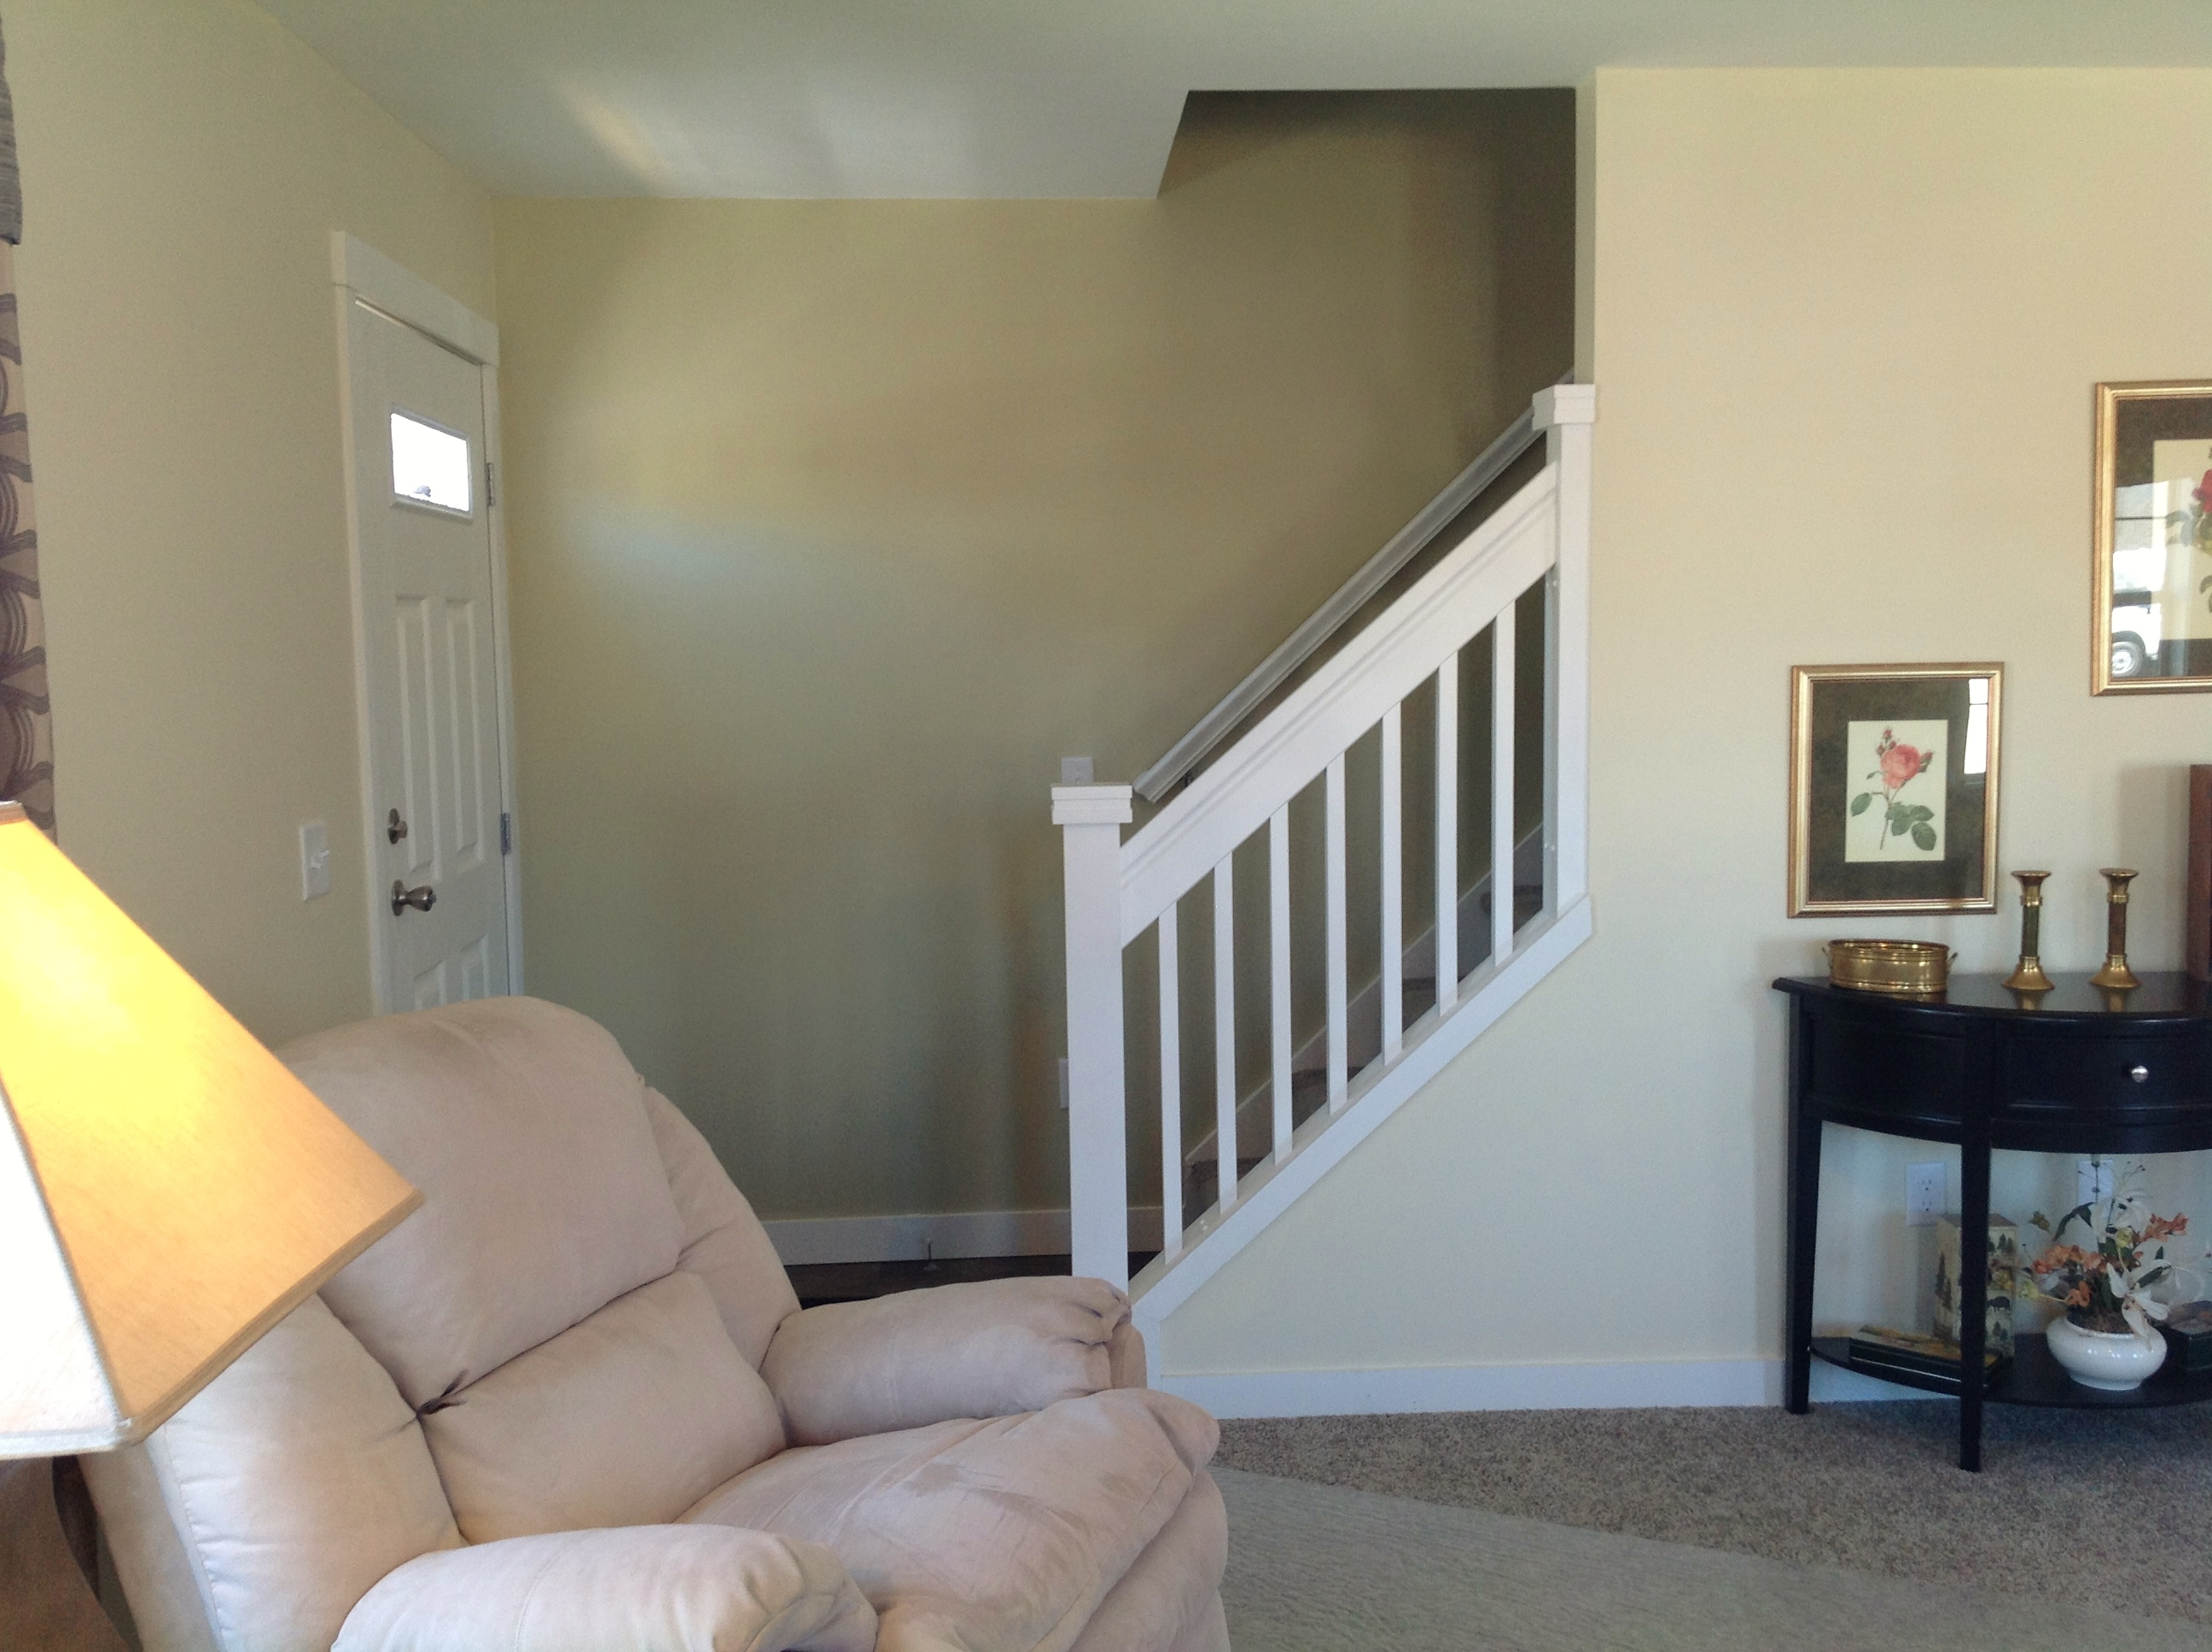 Stair Leading to Unfinished Attic